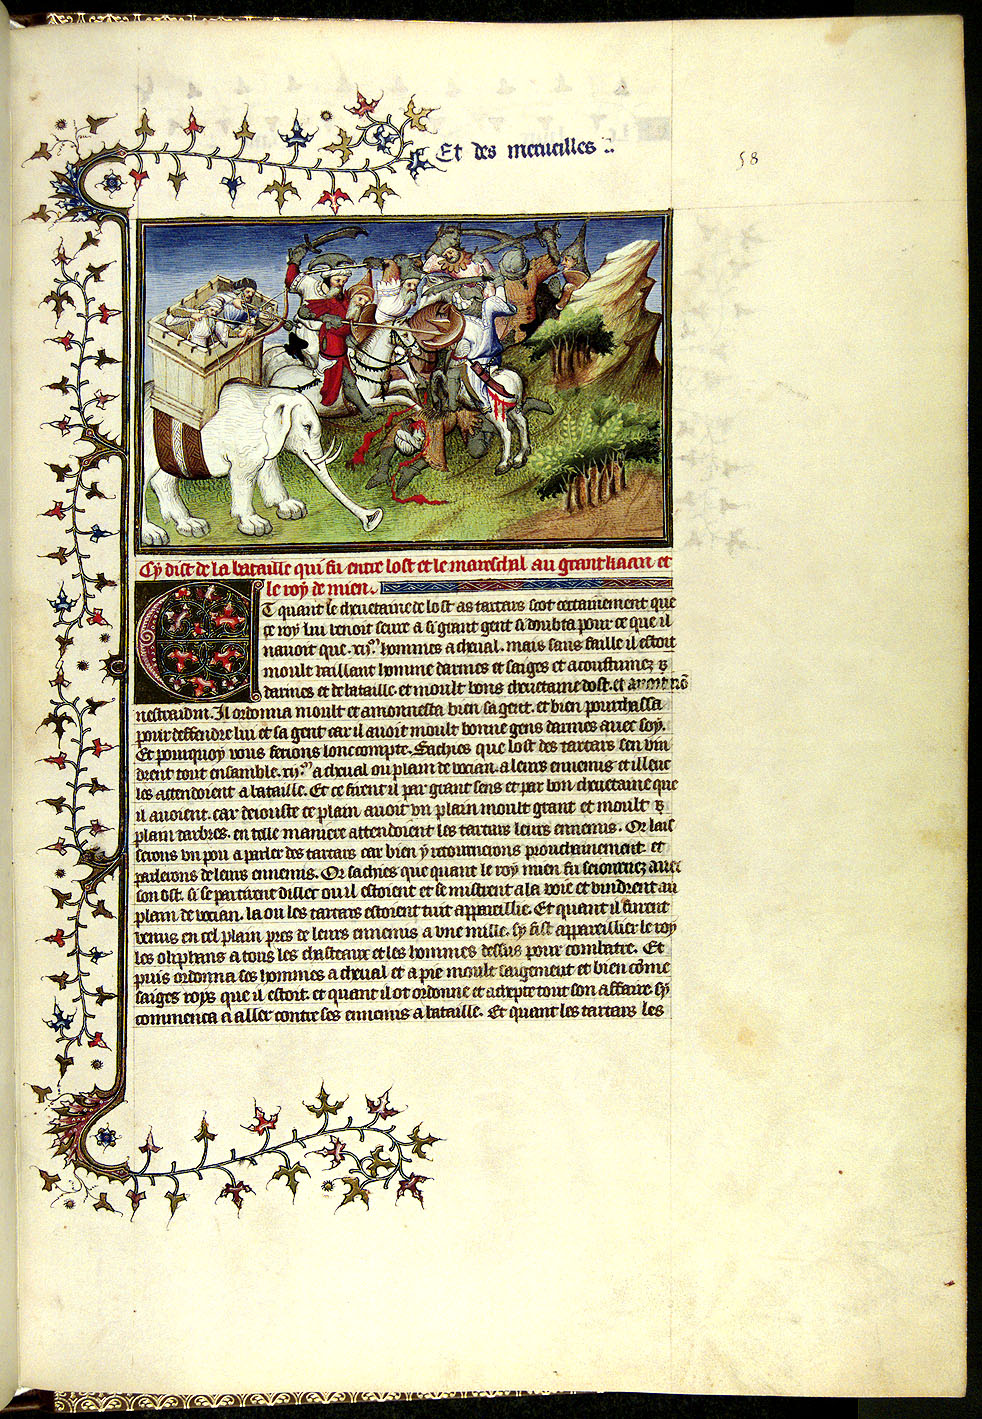 http://upload.wikimedia.org/wikipedia/commons/2/29/Marco_Polo,_Il_Milione,_Chapter_CXXIII_and_CXXIV.jpg